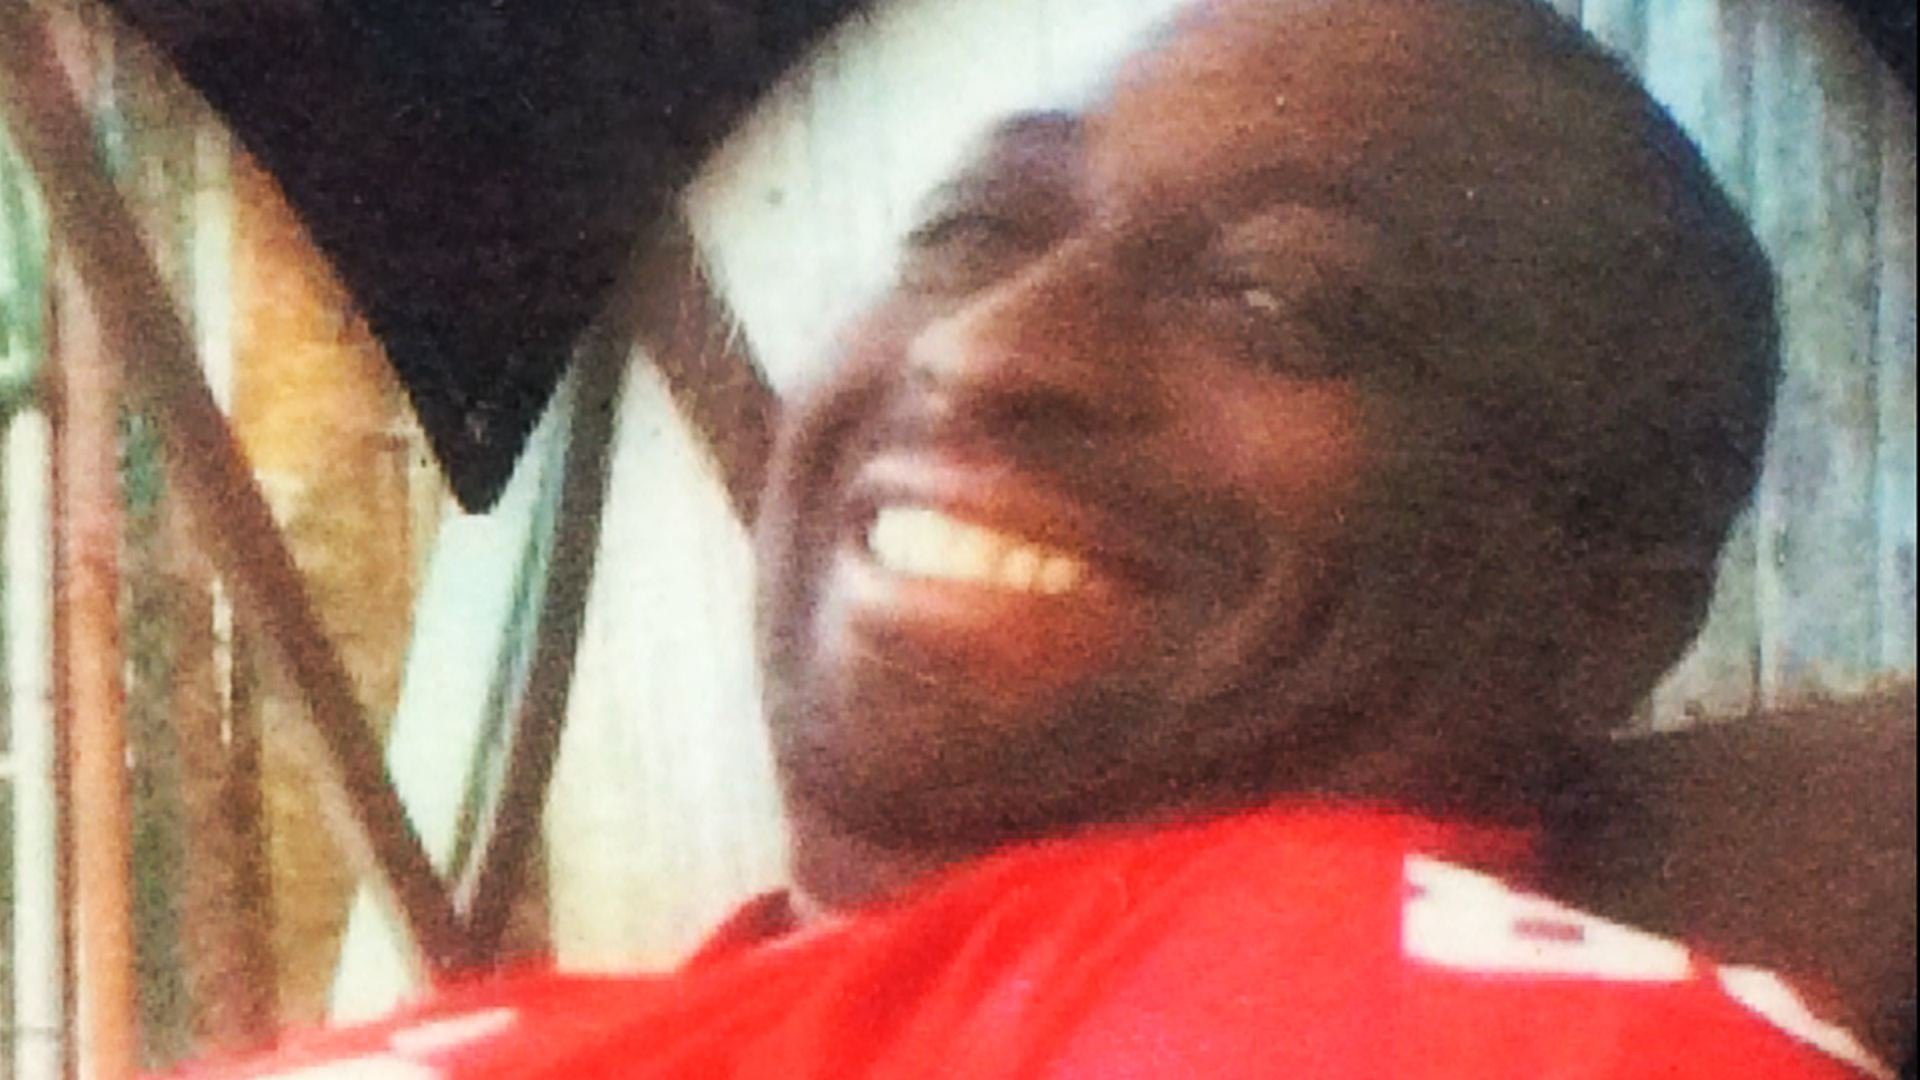 NYPD sgt. loses vacation days for supervisory failures in Garner death